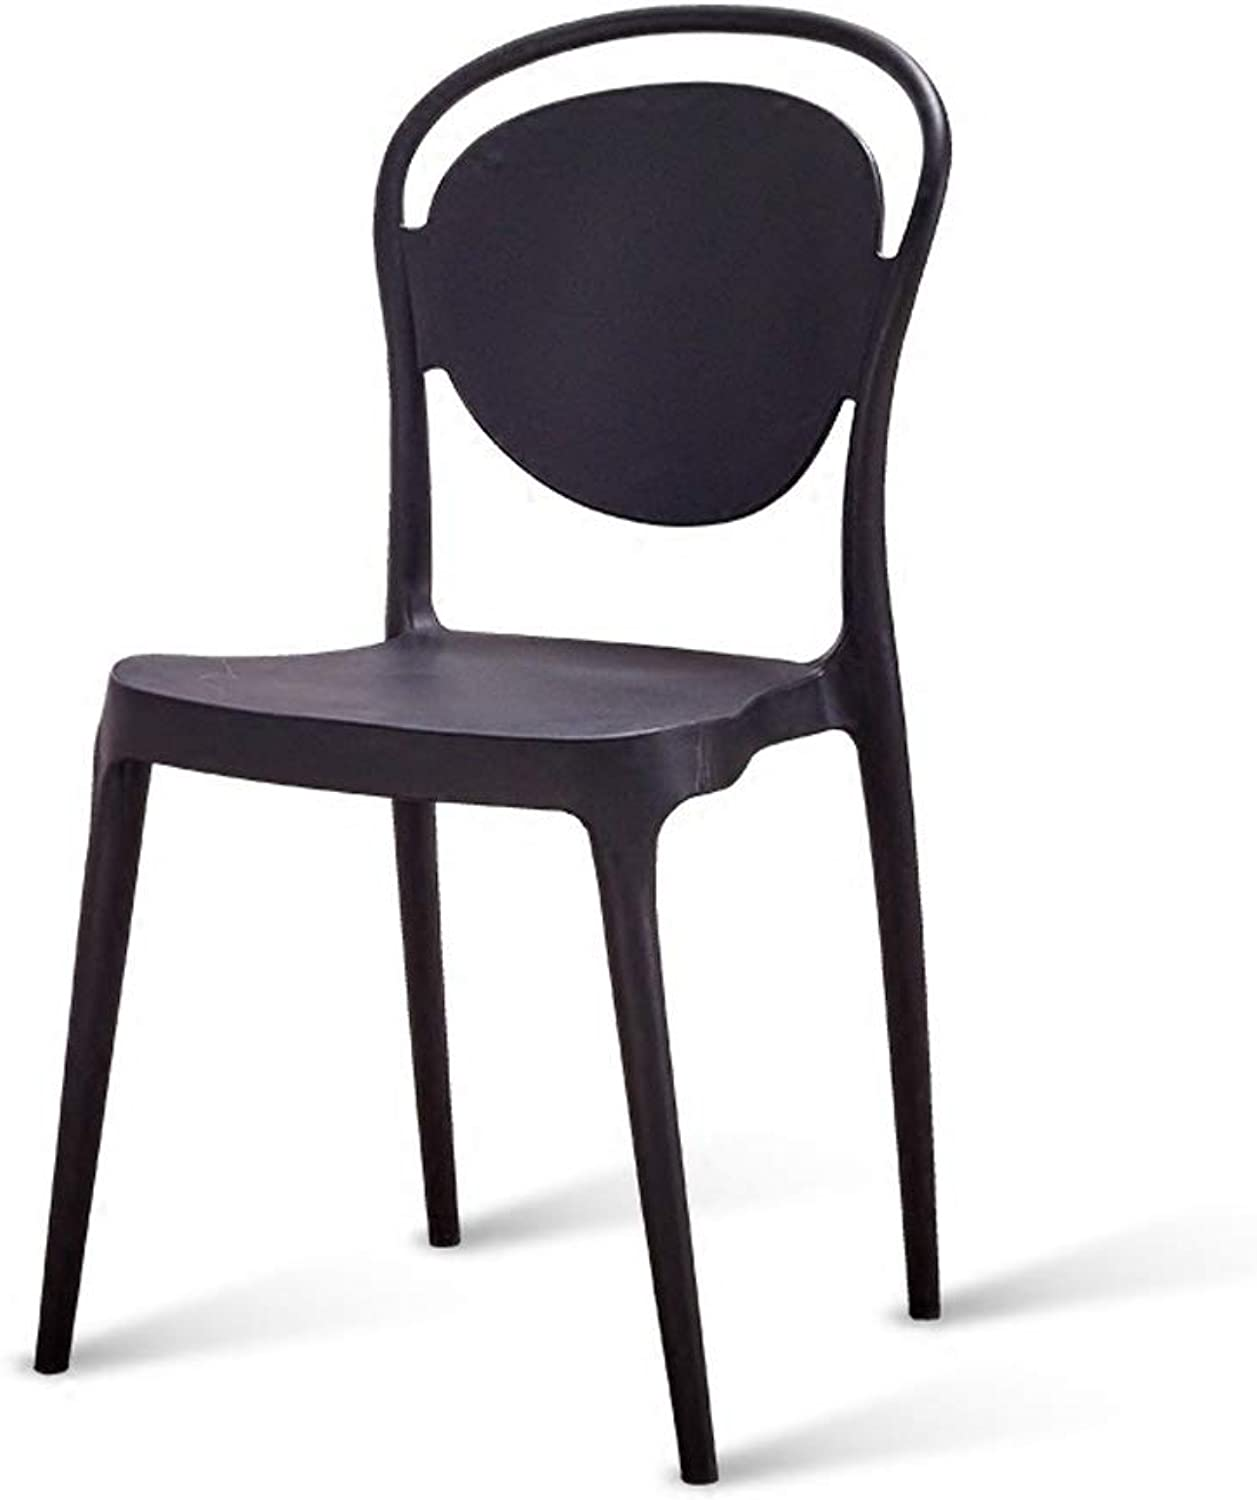 Modern Nordic Simple Dining Chair Backrest Creative Office to Discuss Chairs Adult Plastic Fashion Restaurant Chair Stool Black